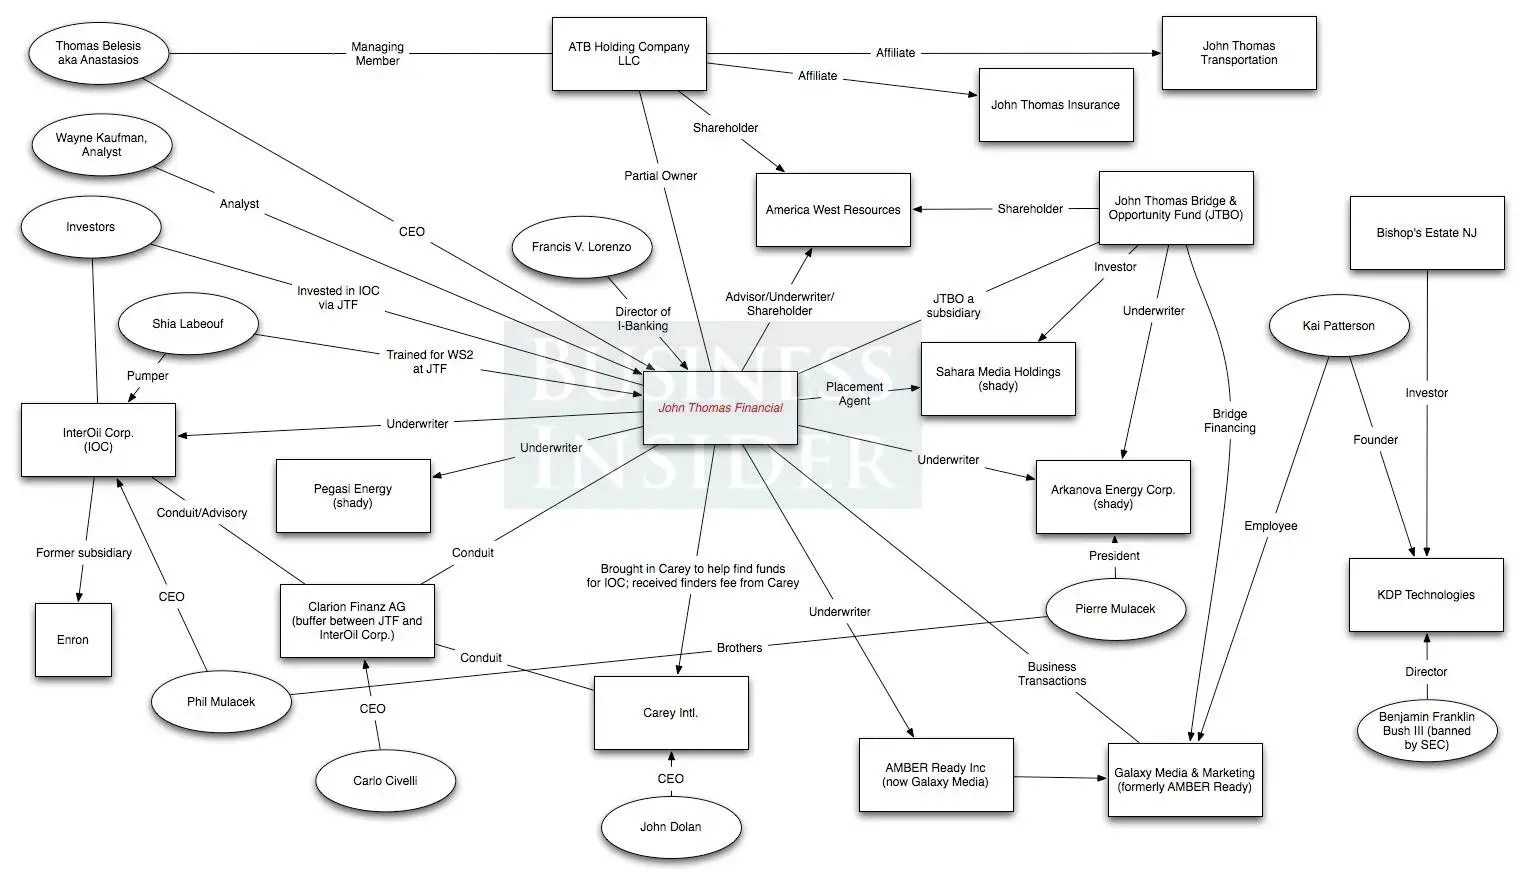 John Thomas Financial Flowchart Enlarged